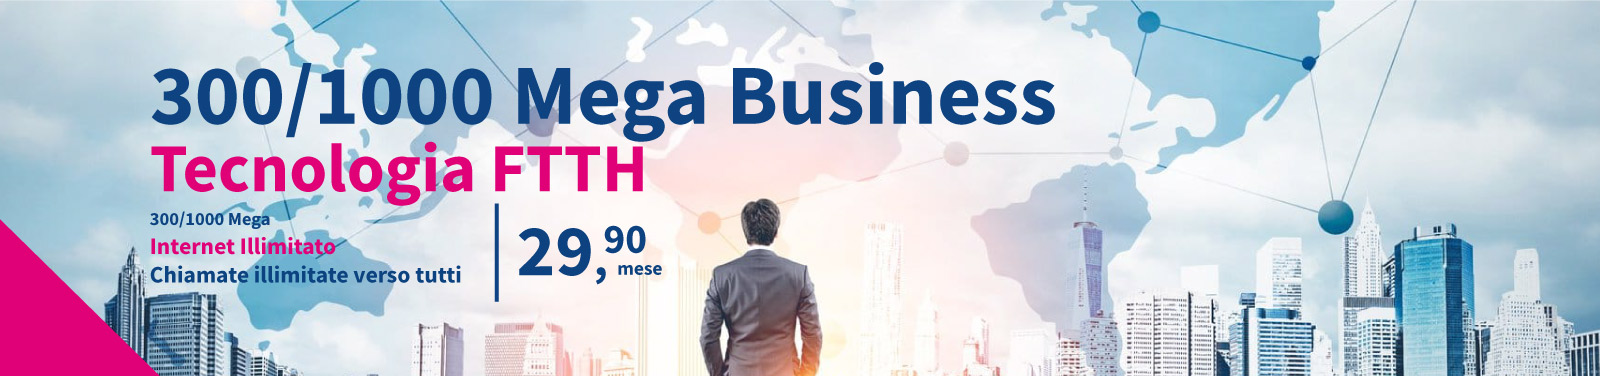 ftth fibra business 300-1000 mega